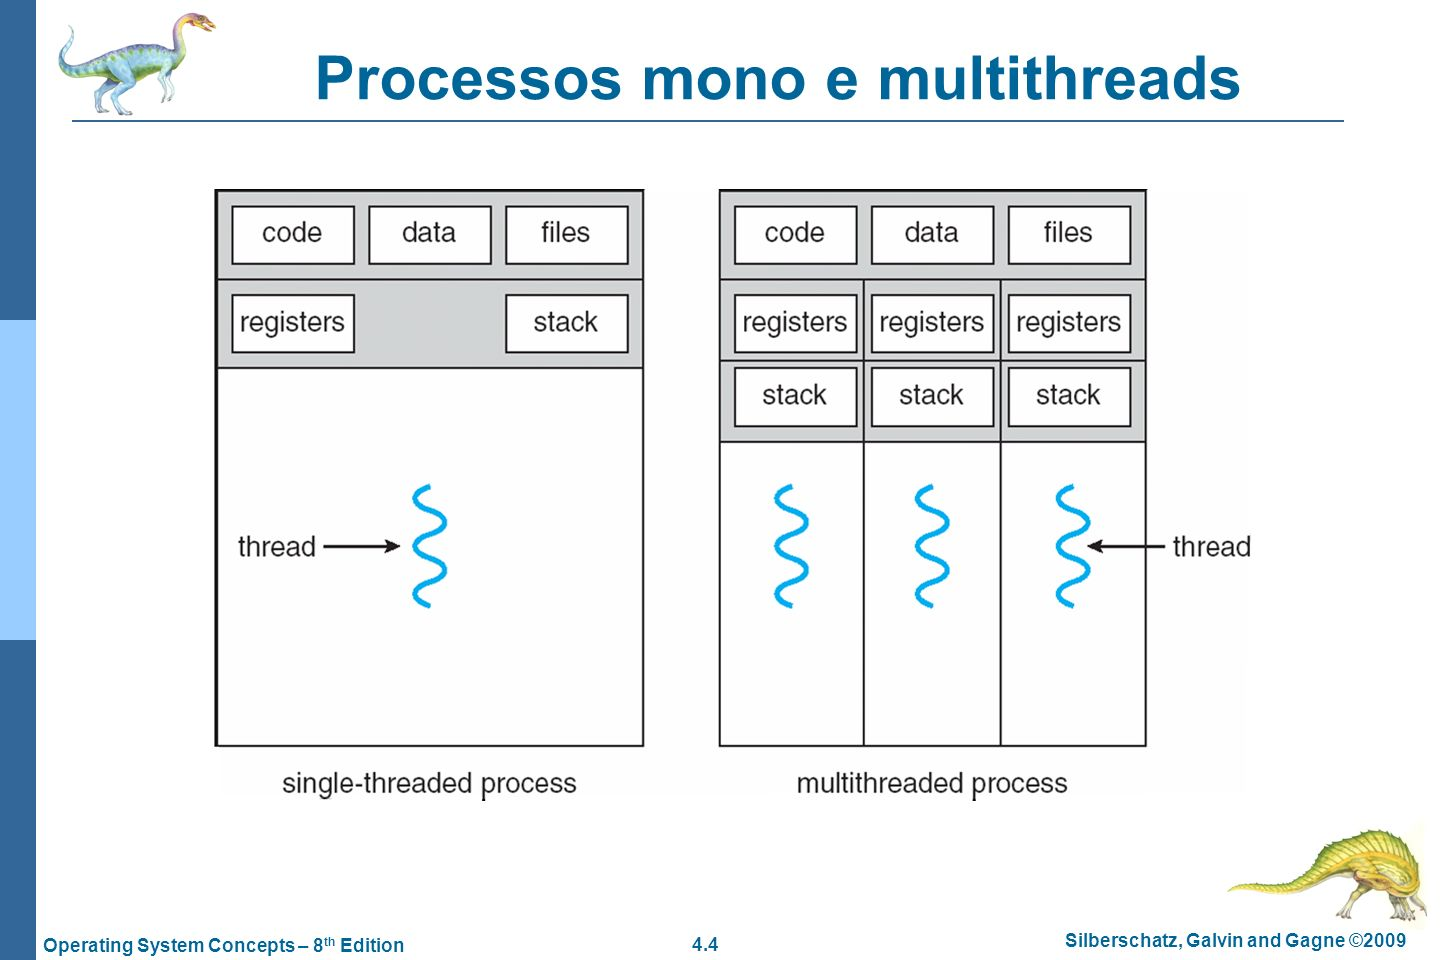 Processos mono e multithreads